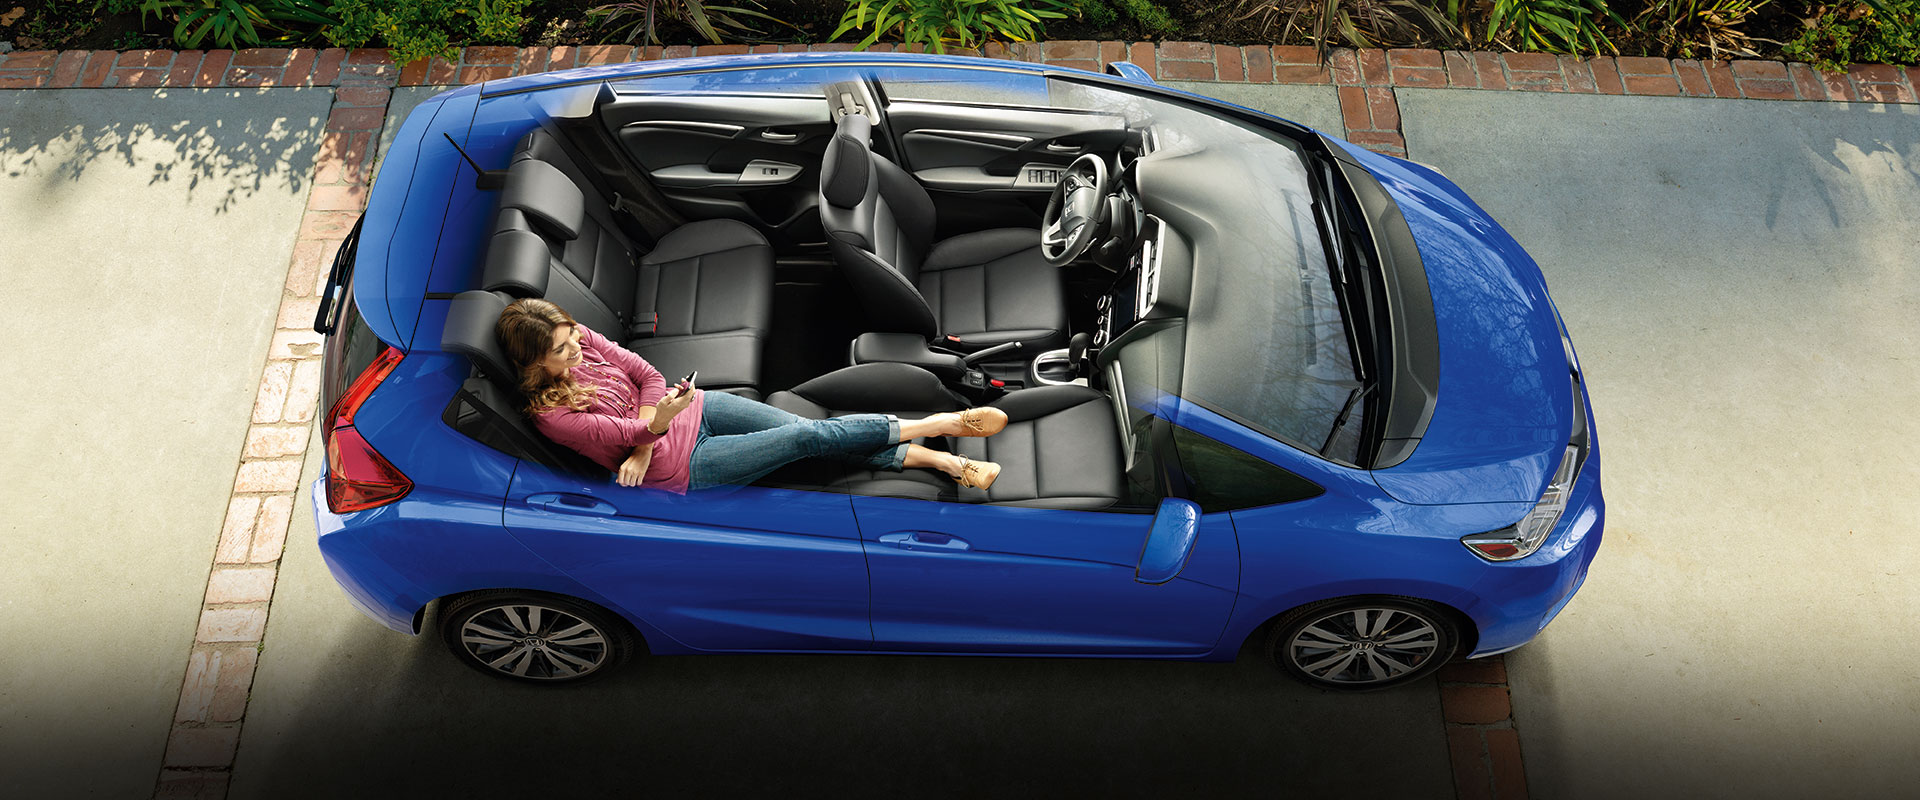 Ford Fiesta Roof Rack >> 2015 Honda Odyssey Interior Features Official Honda Site ...